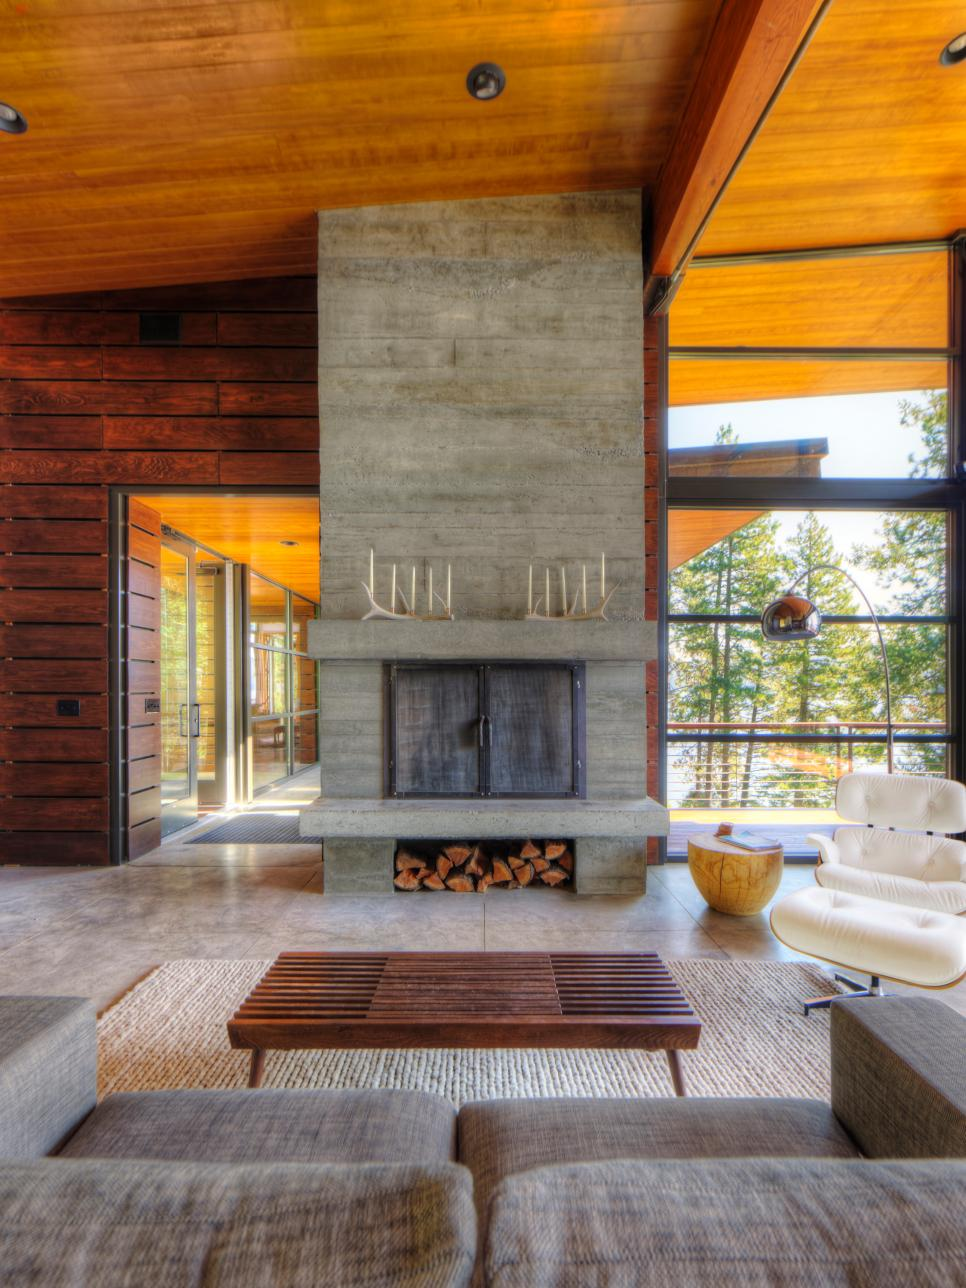 http://www.hgtv.com/remodel/interior-remodel/17-hot-fireplace-designs-pictures